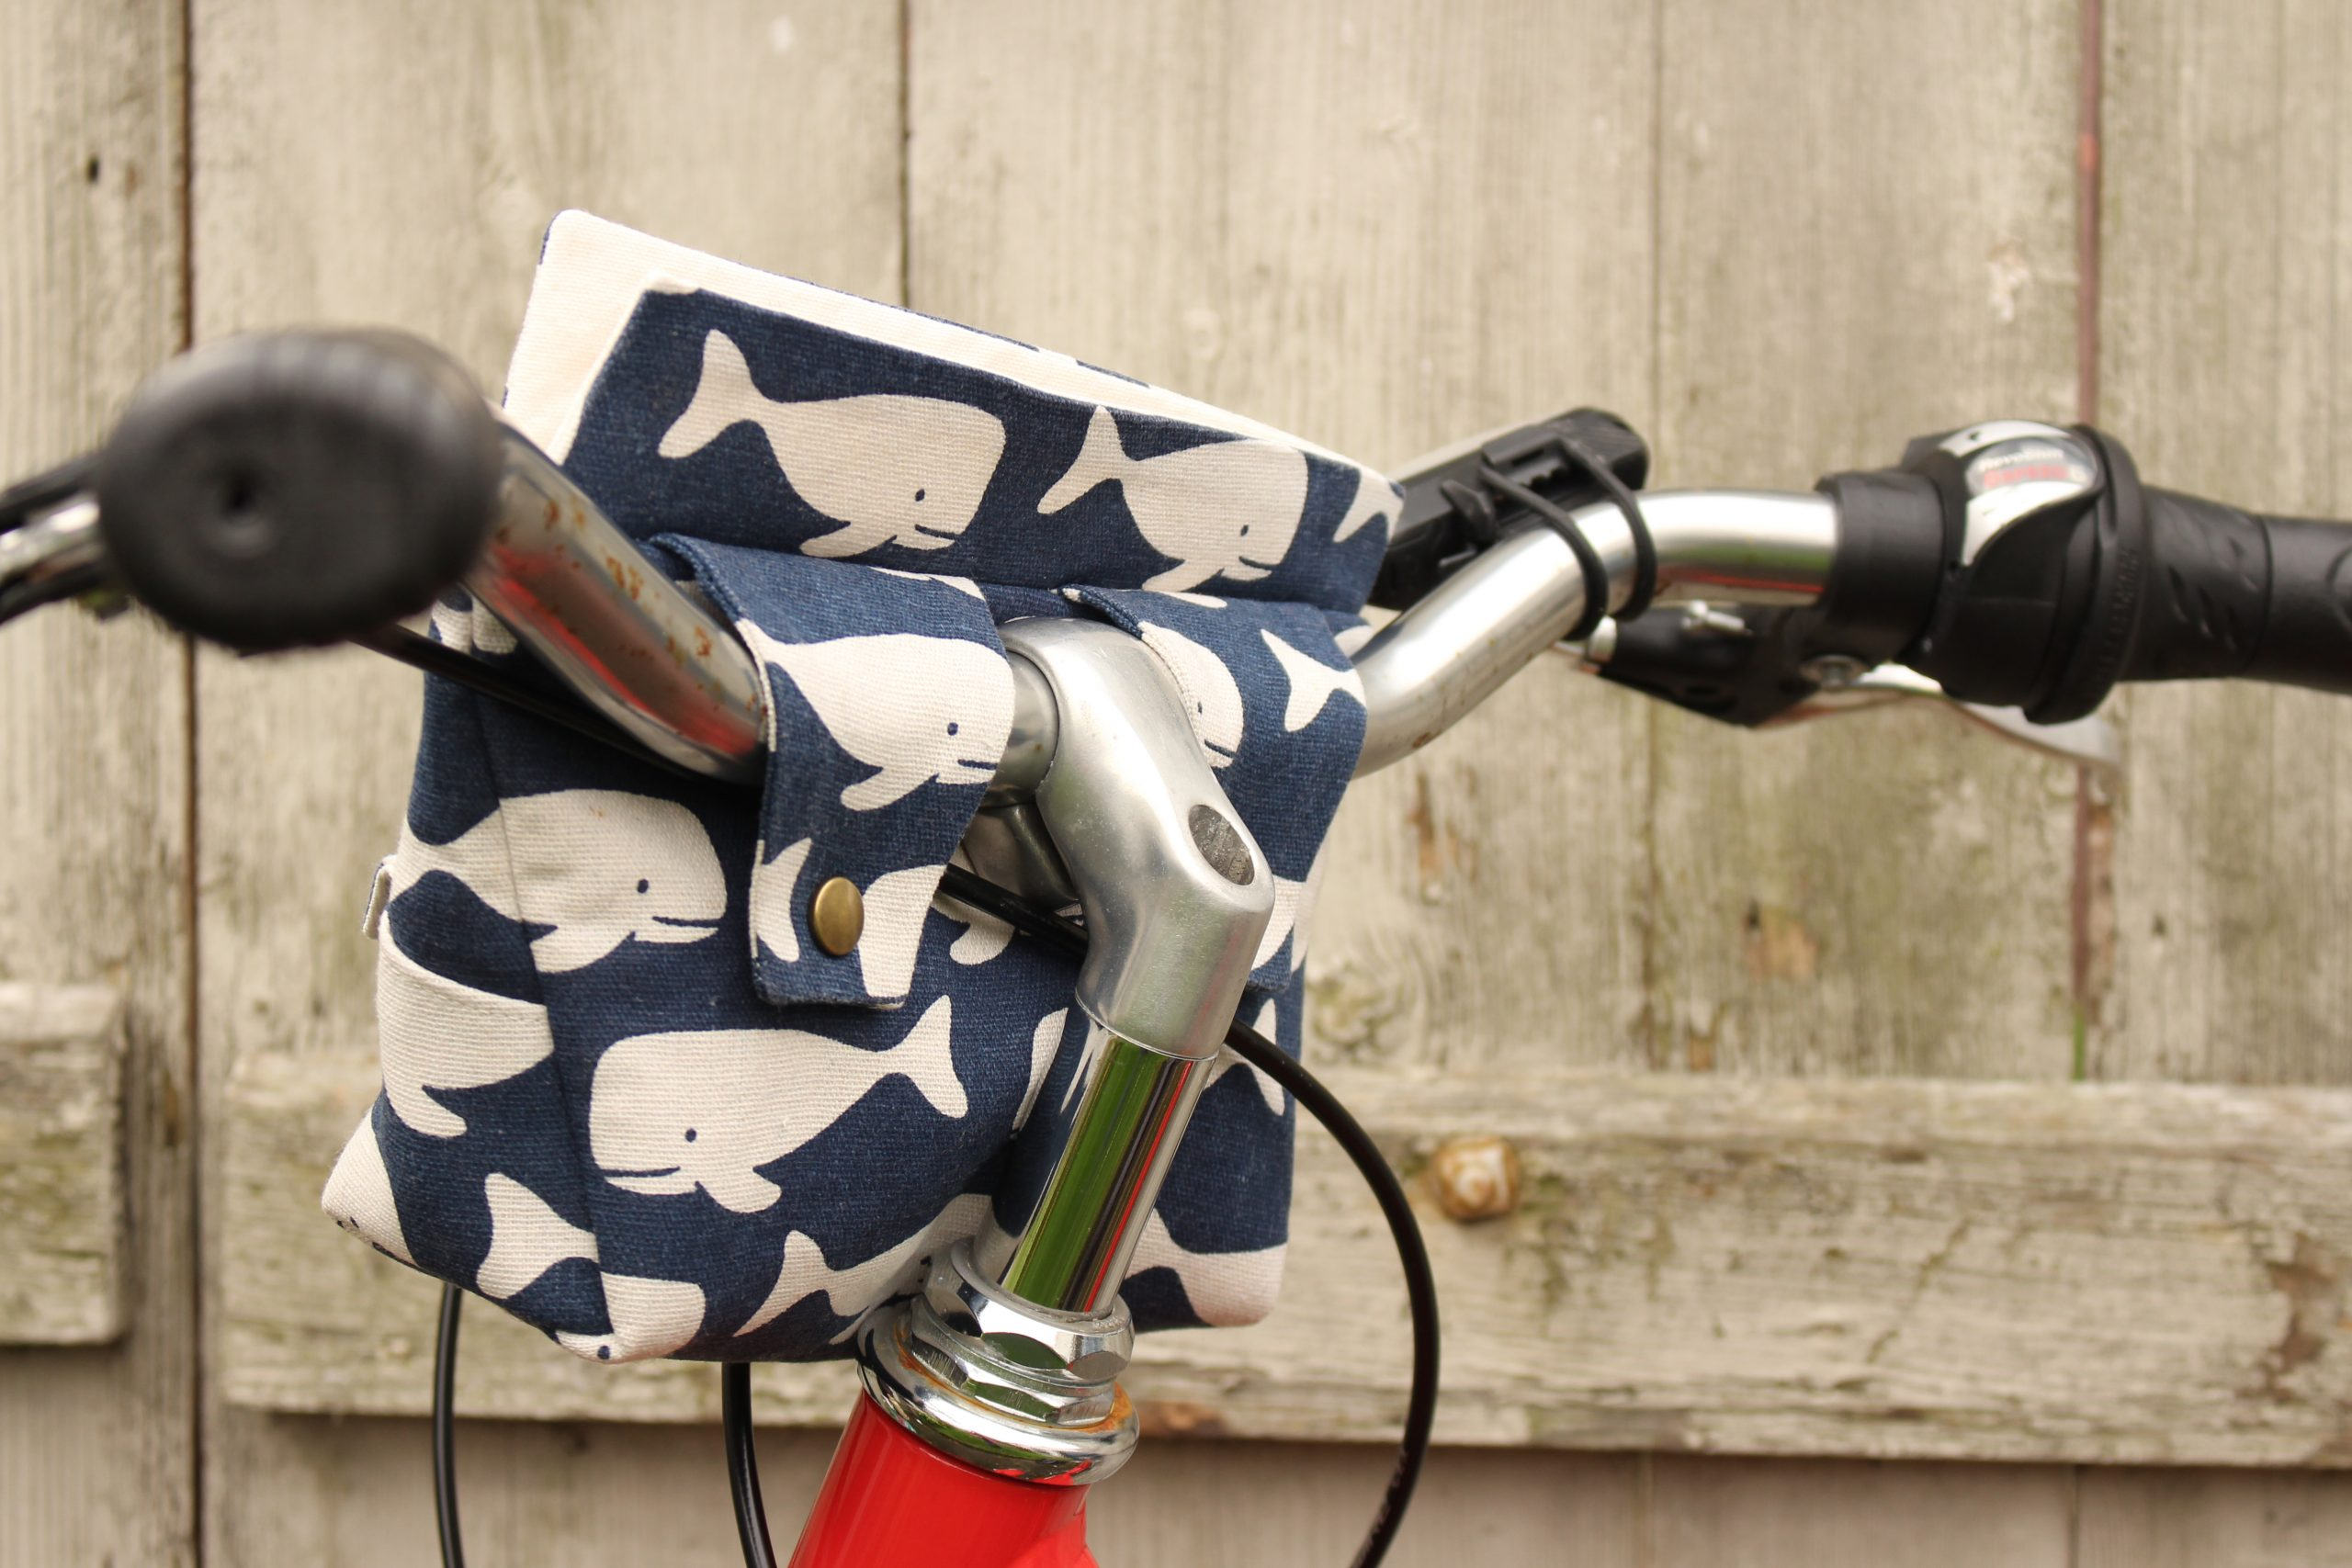 #hackaTRAP No.3 – Bike Bag